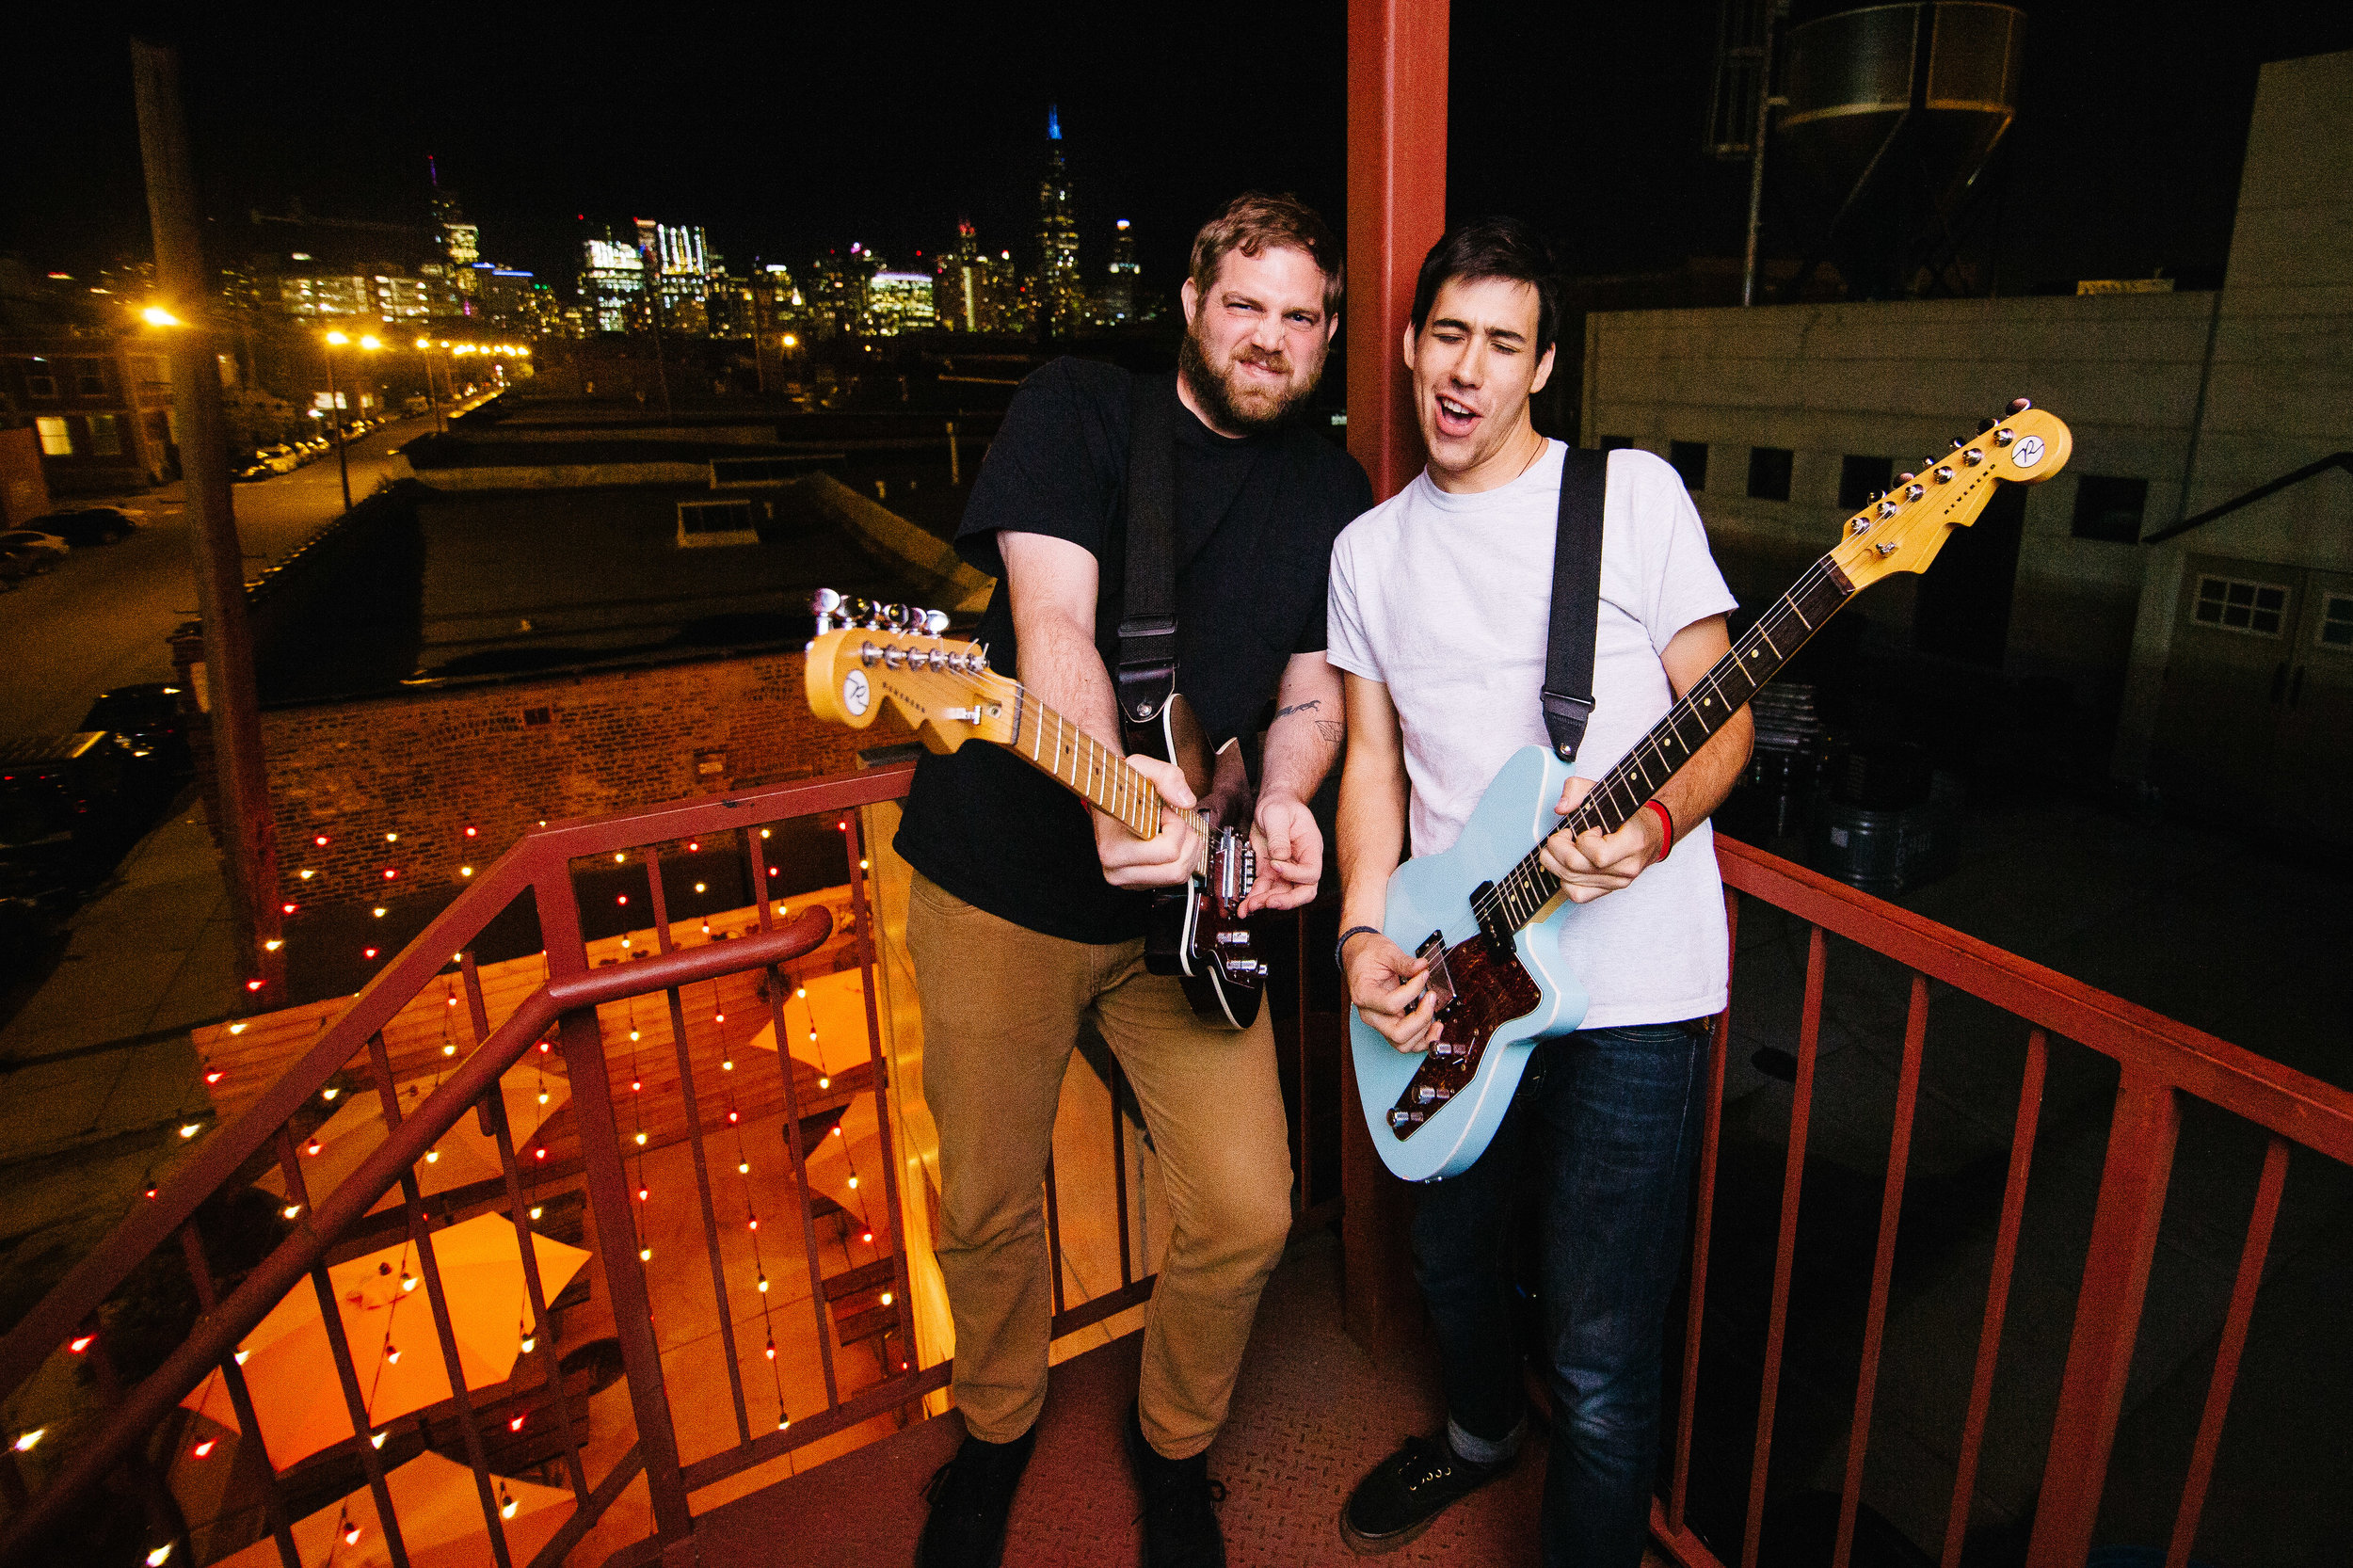 Matt and Max with their Reverend Guitars before the show.